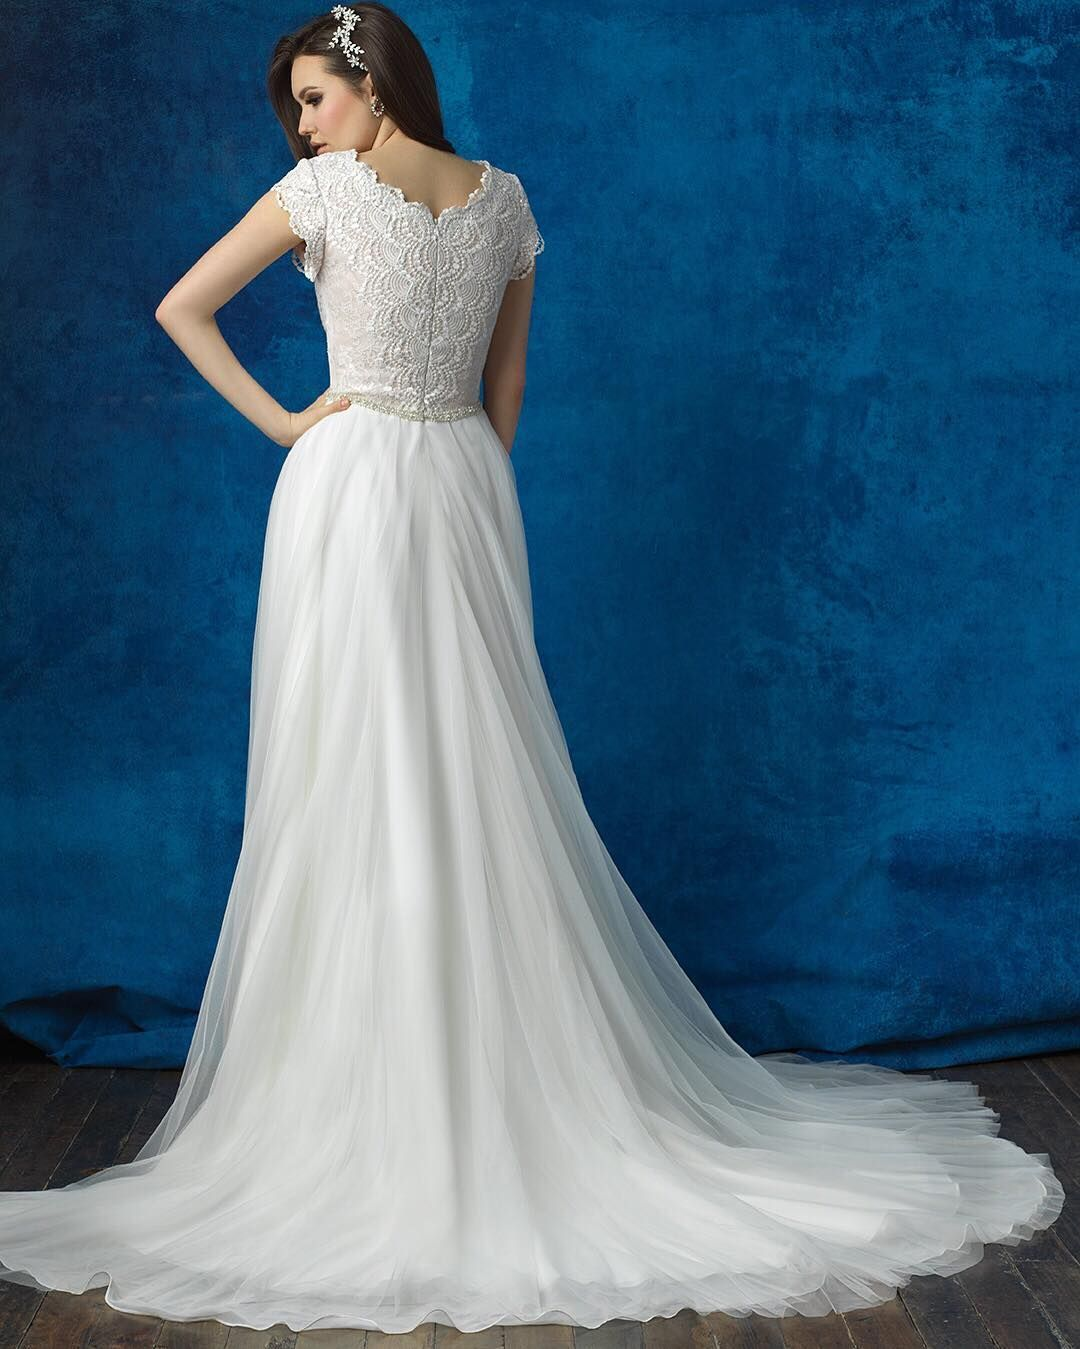 The back of #M564 is just as gorgeous as the front! #StyleOfTheWeek